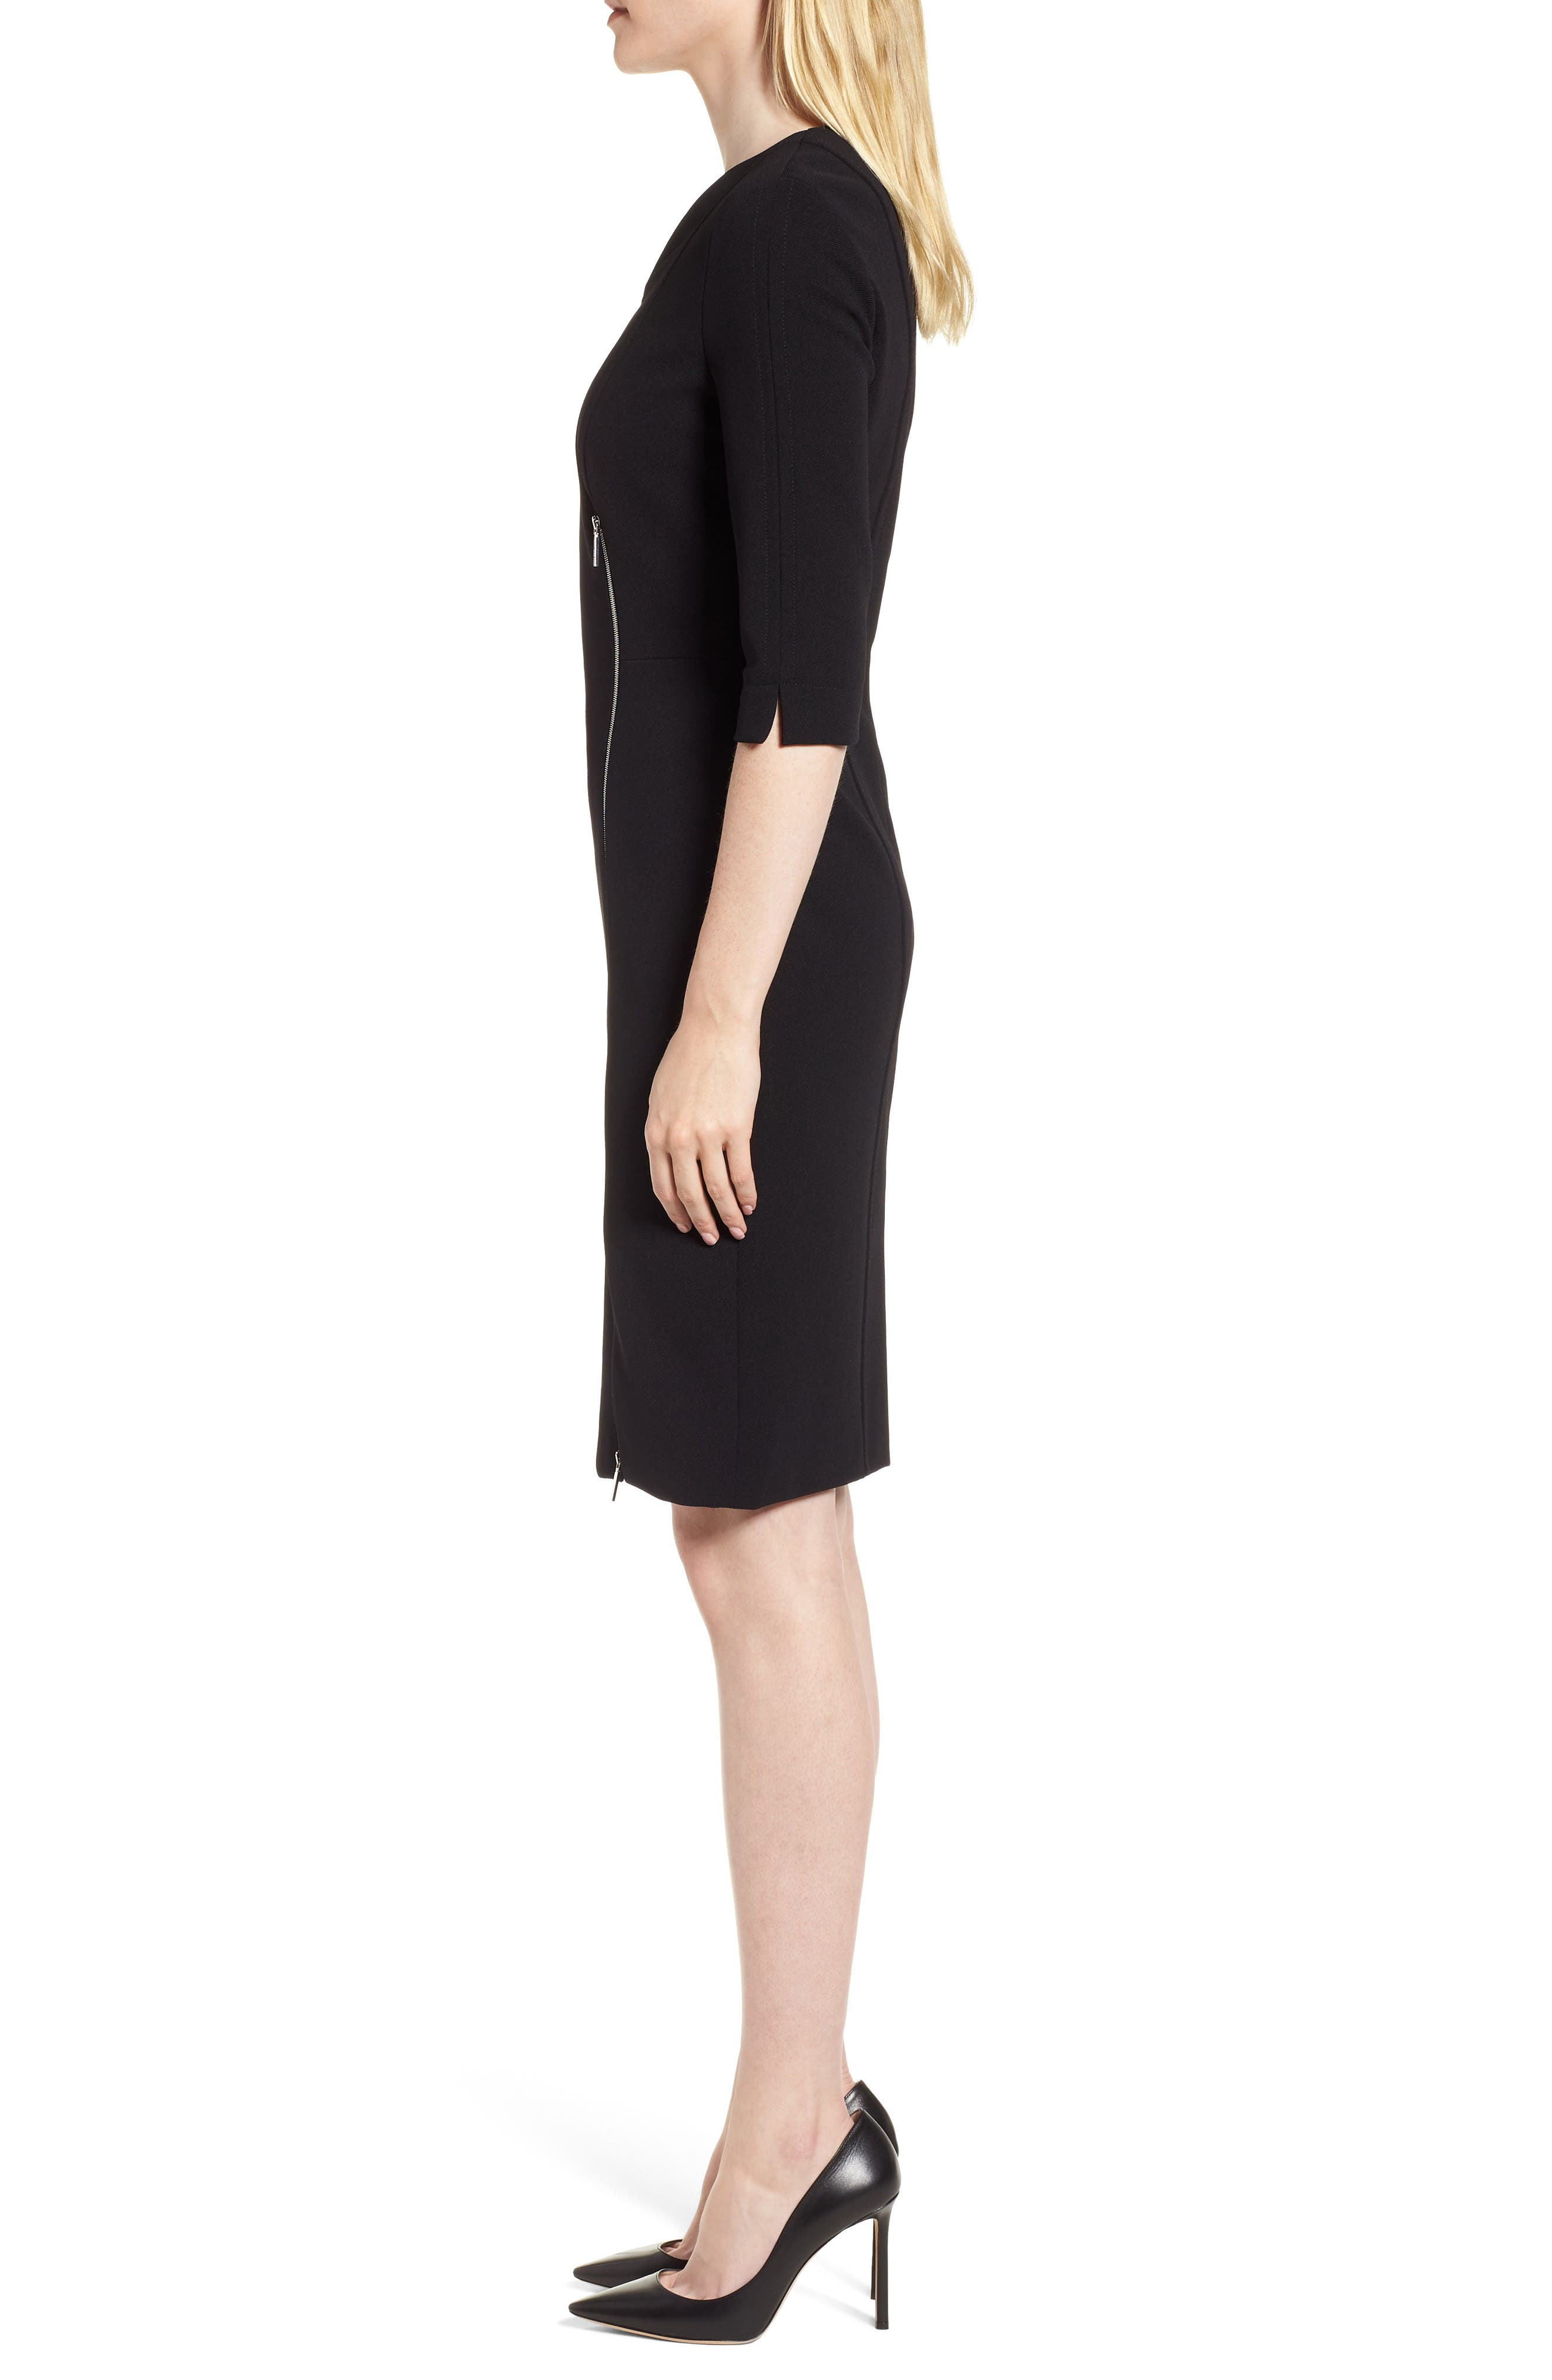 Deazema Twill Jersey Dress,                             Alternate thumbnail 3, color,                             Black